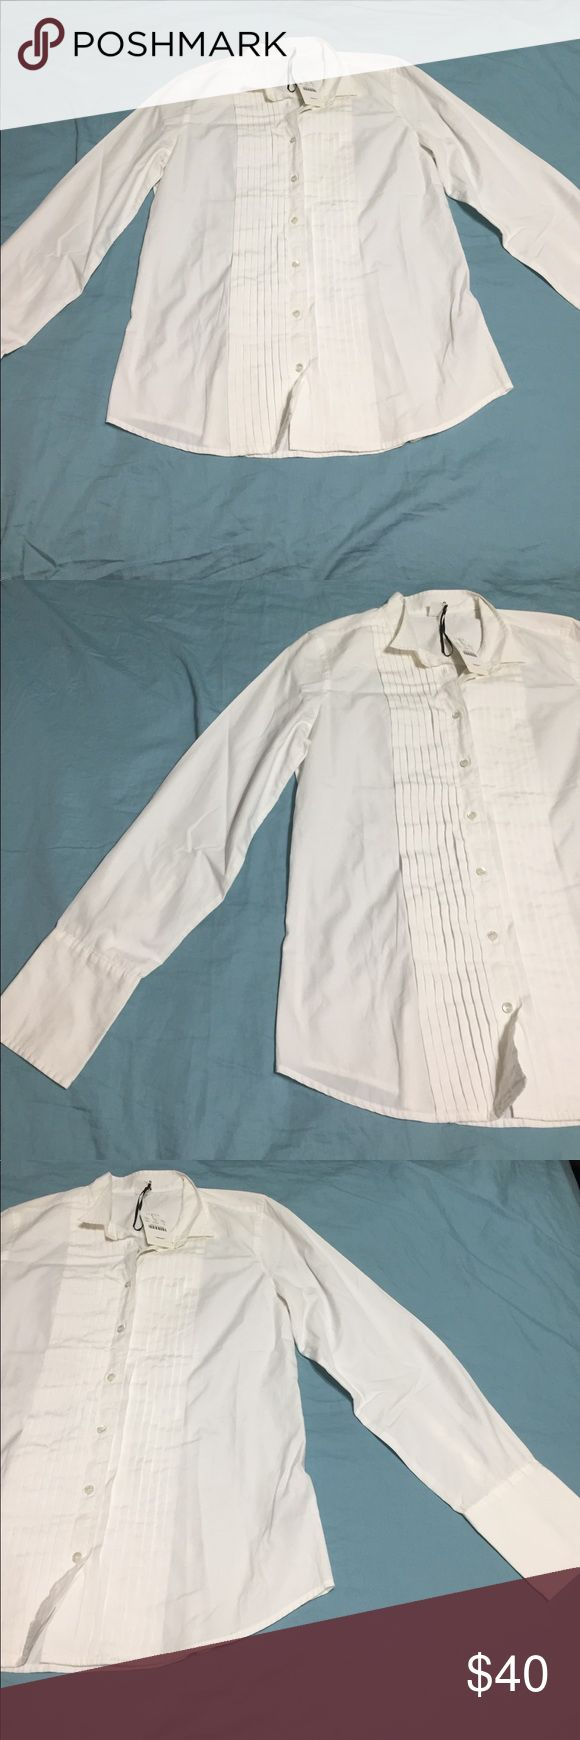 J Crew Shirt Tuxedo Style Cute shirt from J Crew new with tags never worn extra button still attached J. Crew Tops Blouses